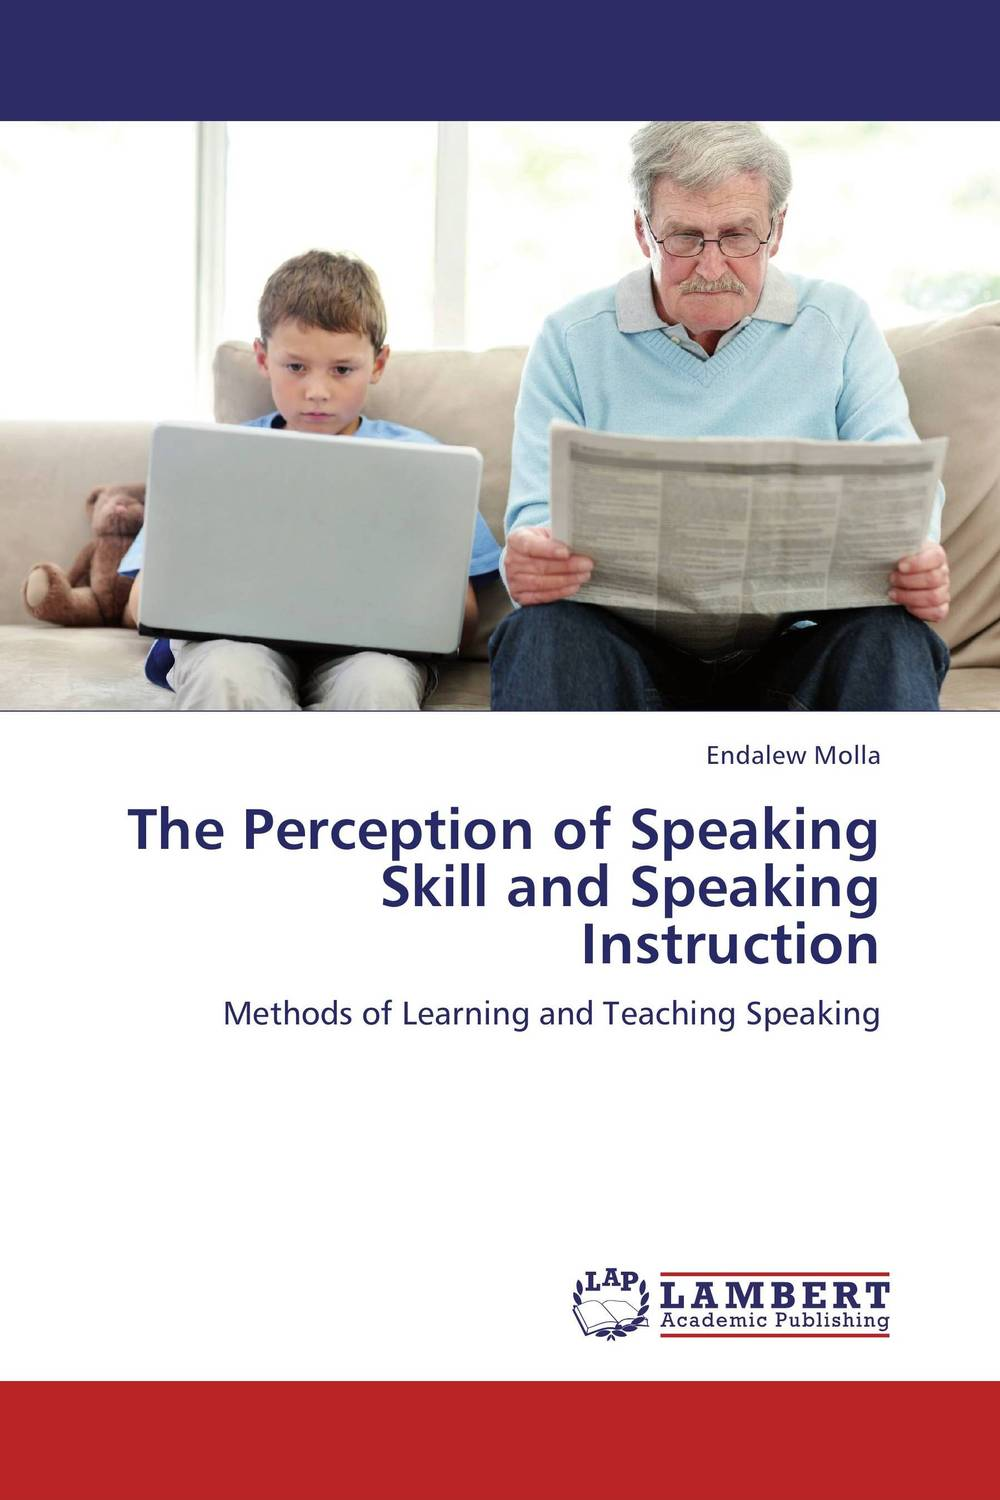 The Perception of Speaking Skill and Speaking Instruction skill wars